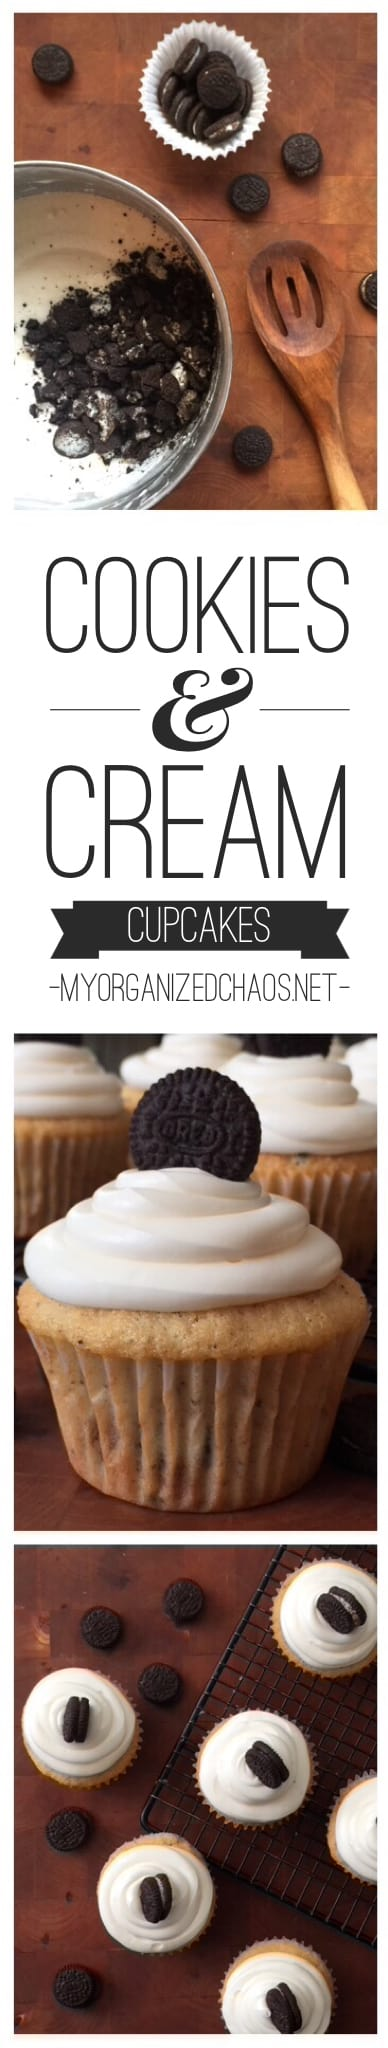 cookies and cream cupcakes oreo